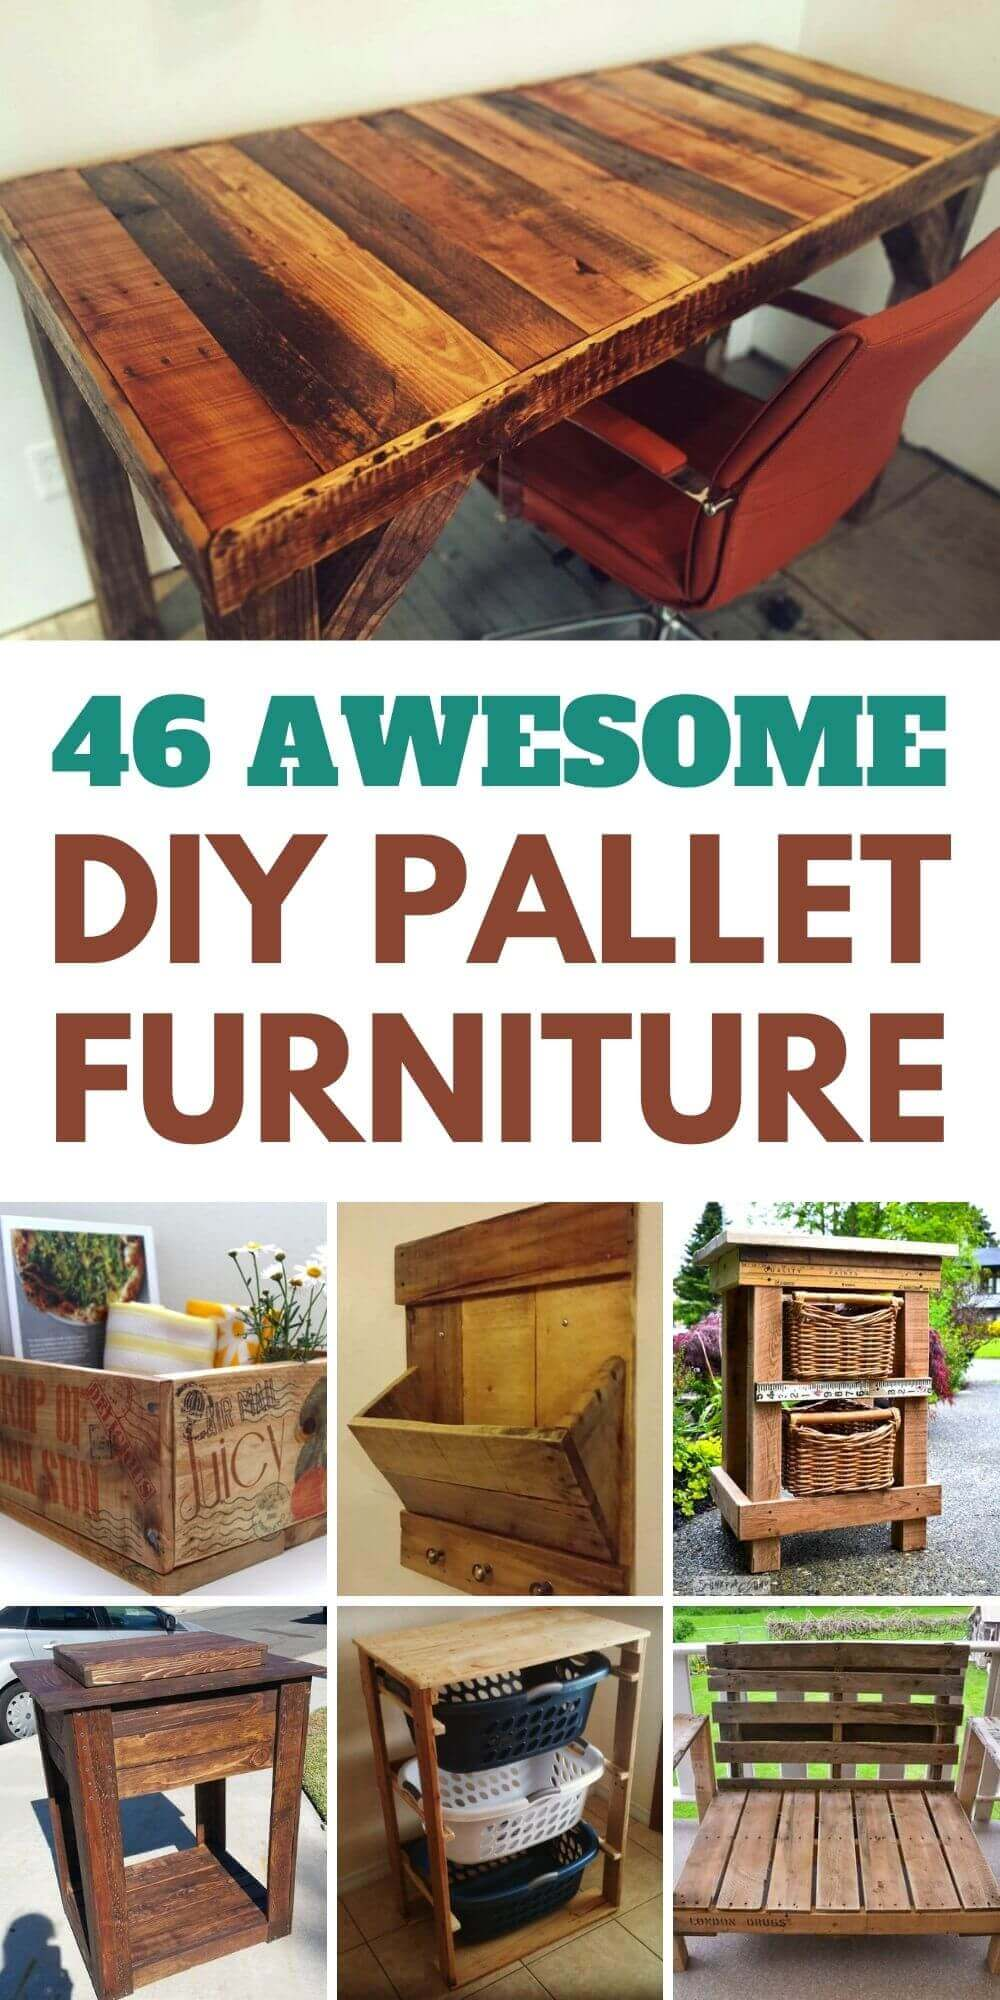 46 Awesome DIY Pallet Furniture Ideas